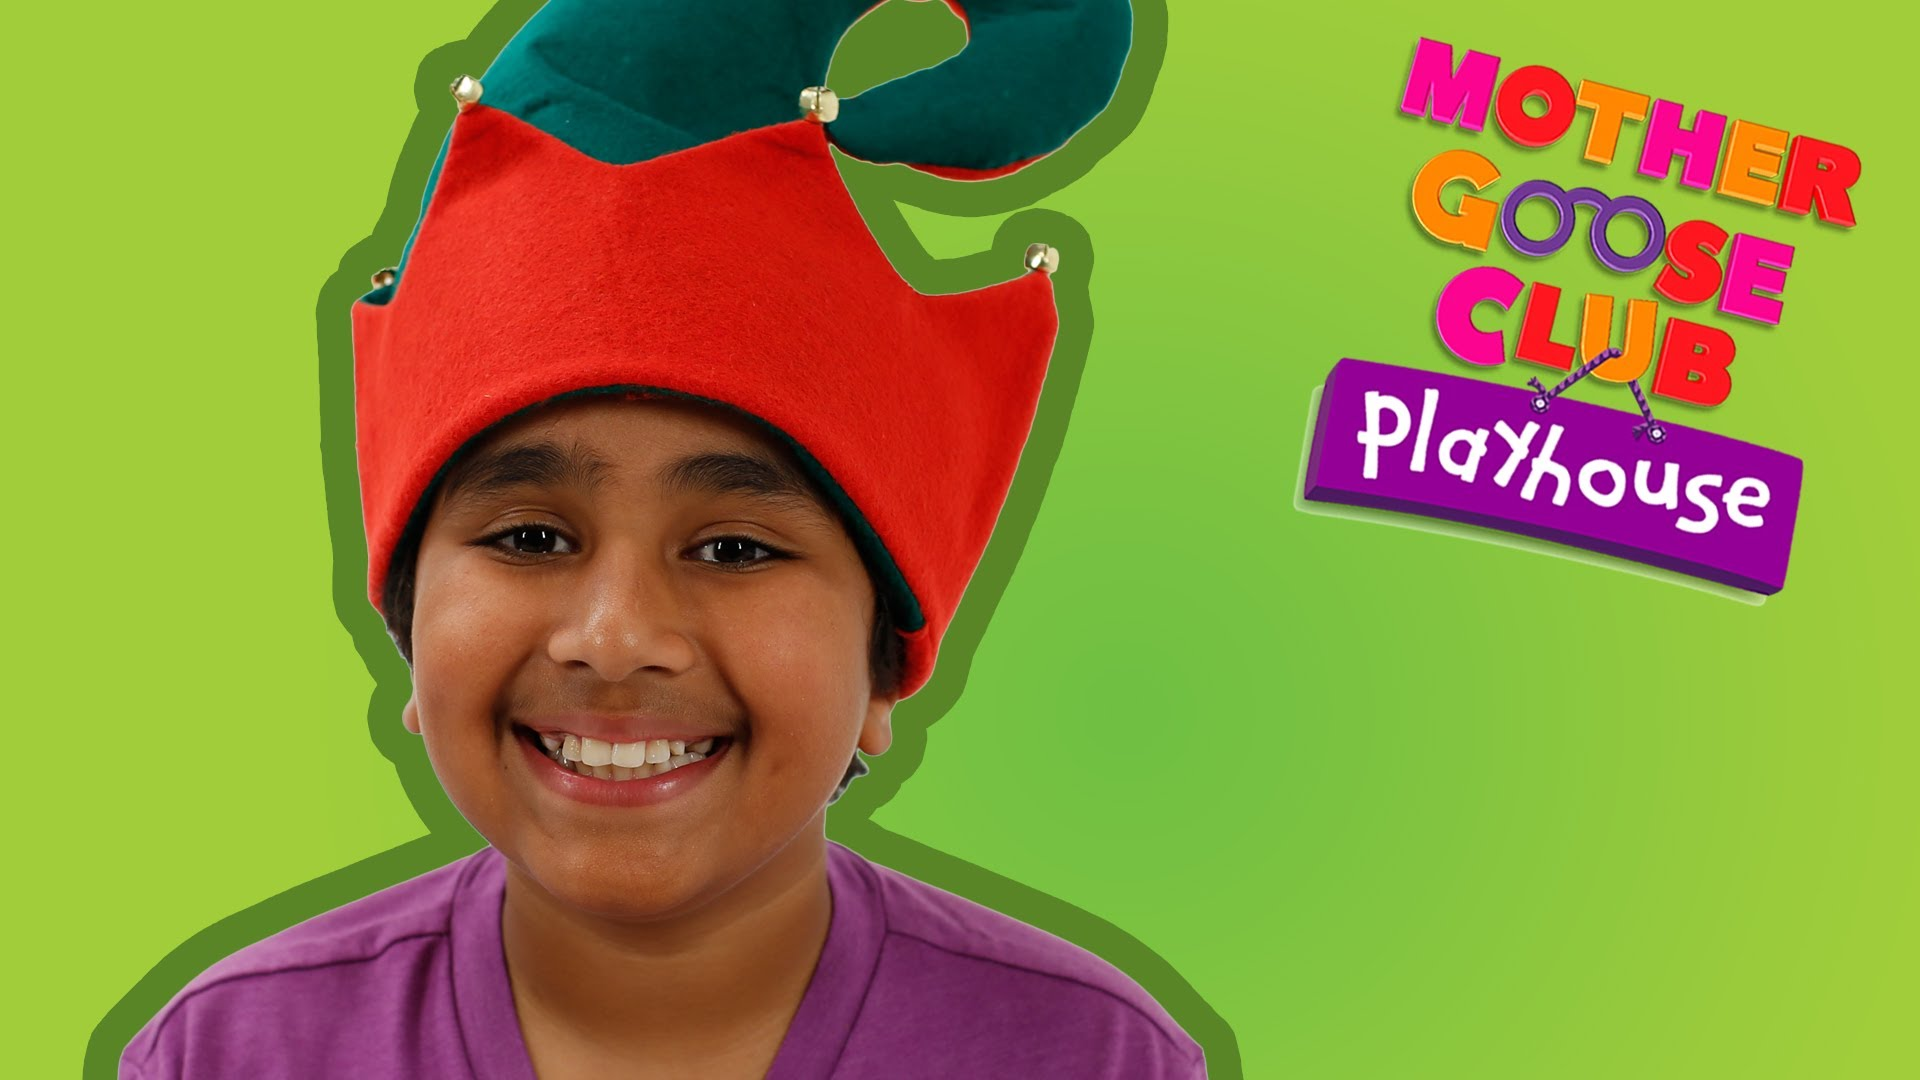 Jack in the Box | Mother Goose Club Playhouse Kids Video